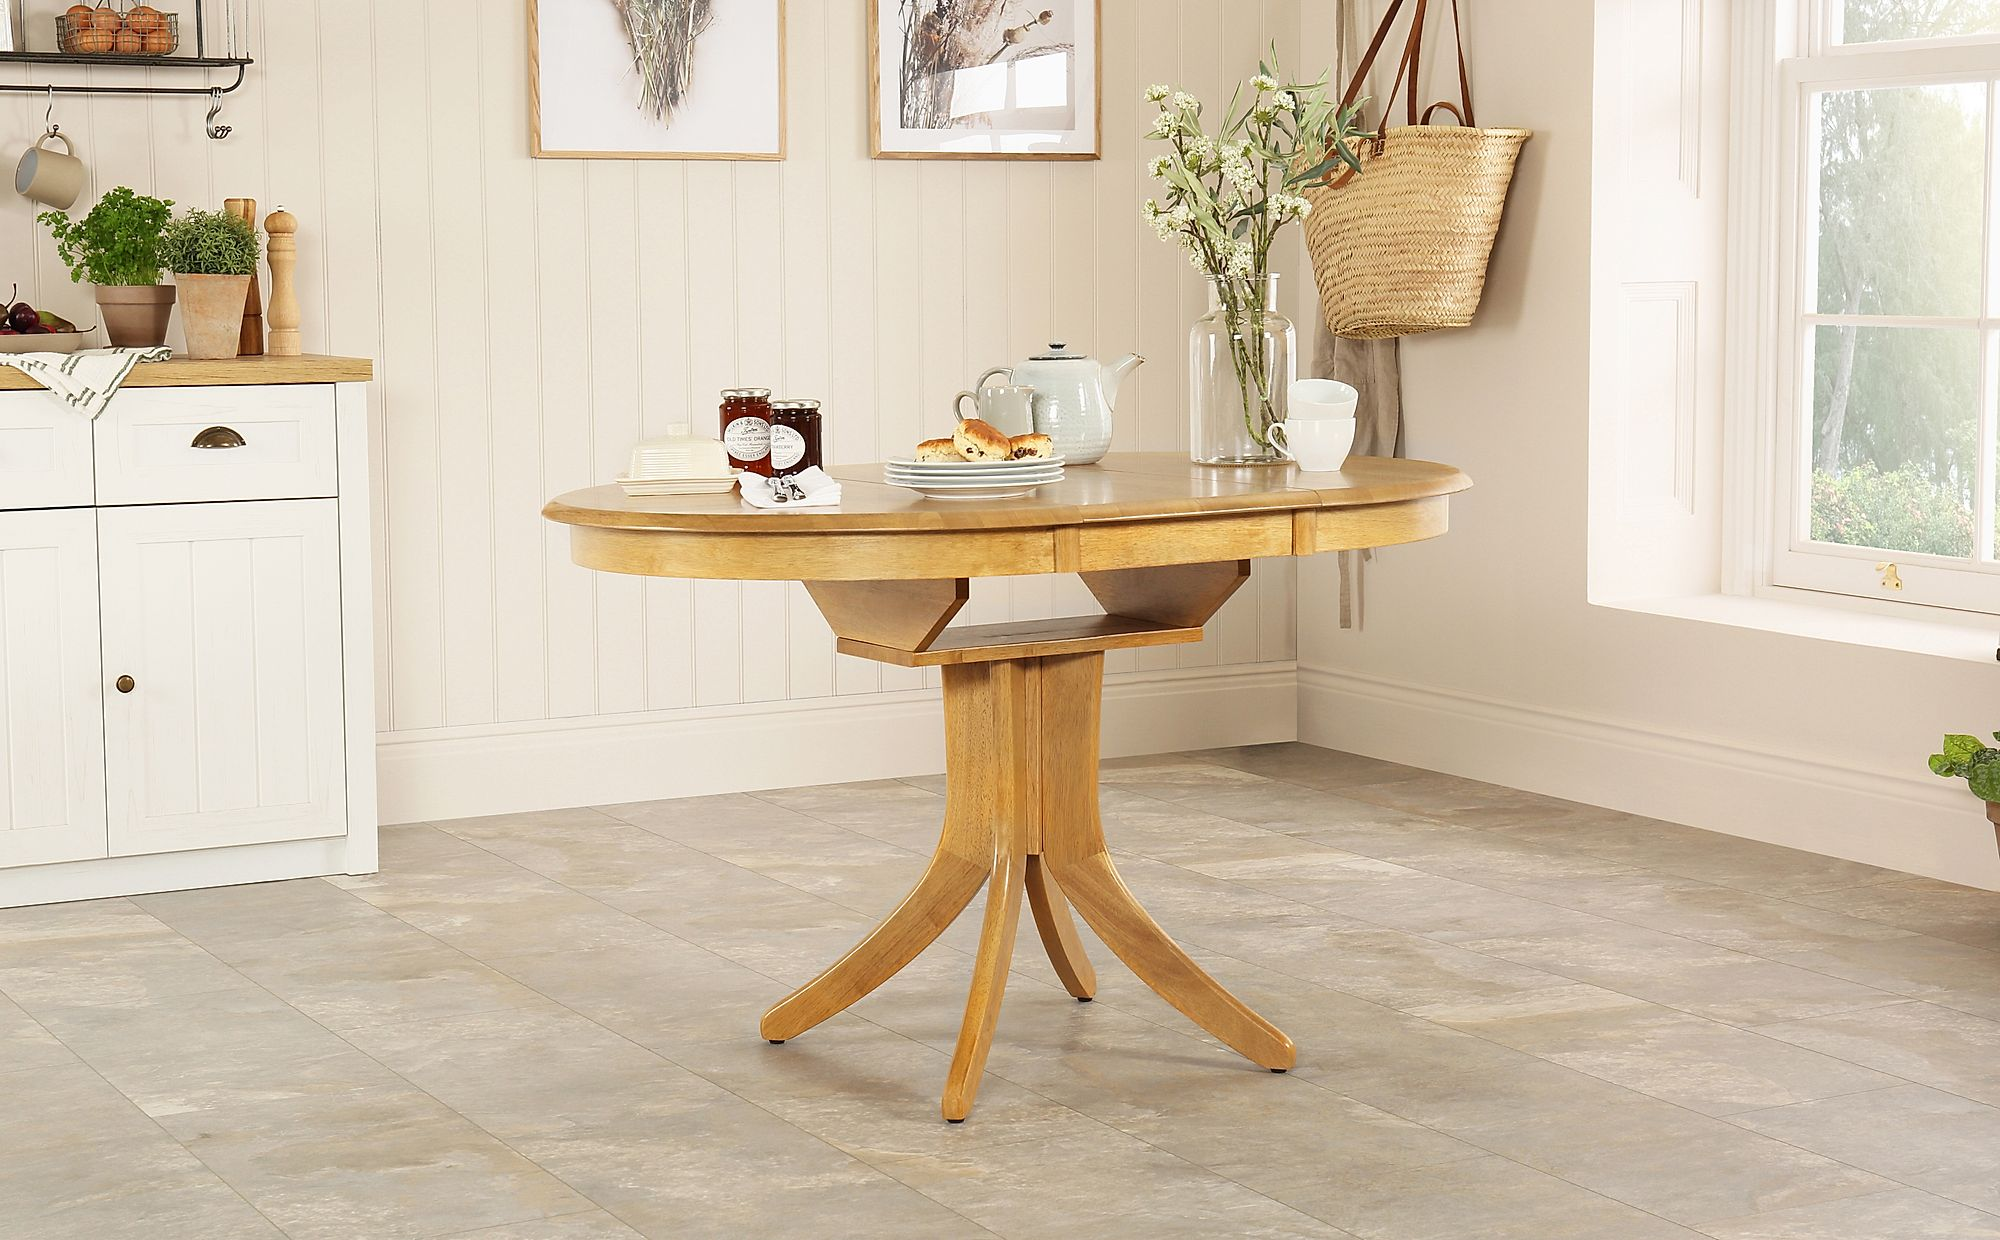 Hudson Round Natural Oak Extending Dining Room Table 90 120 Only